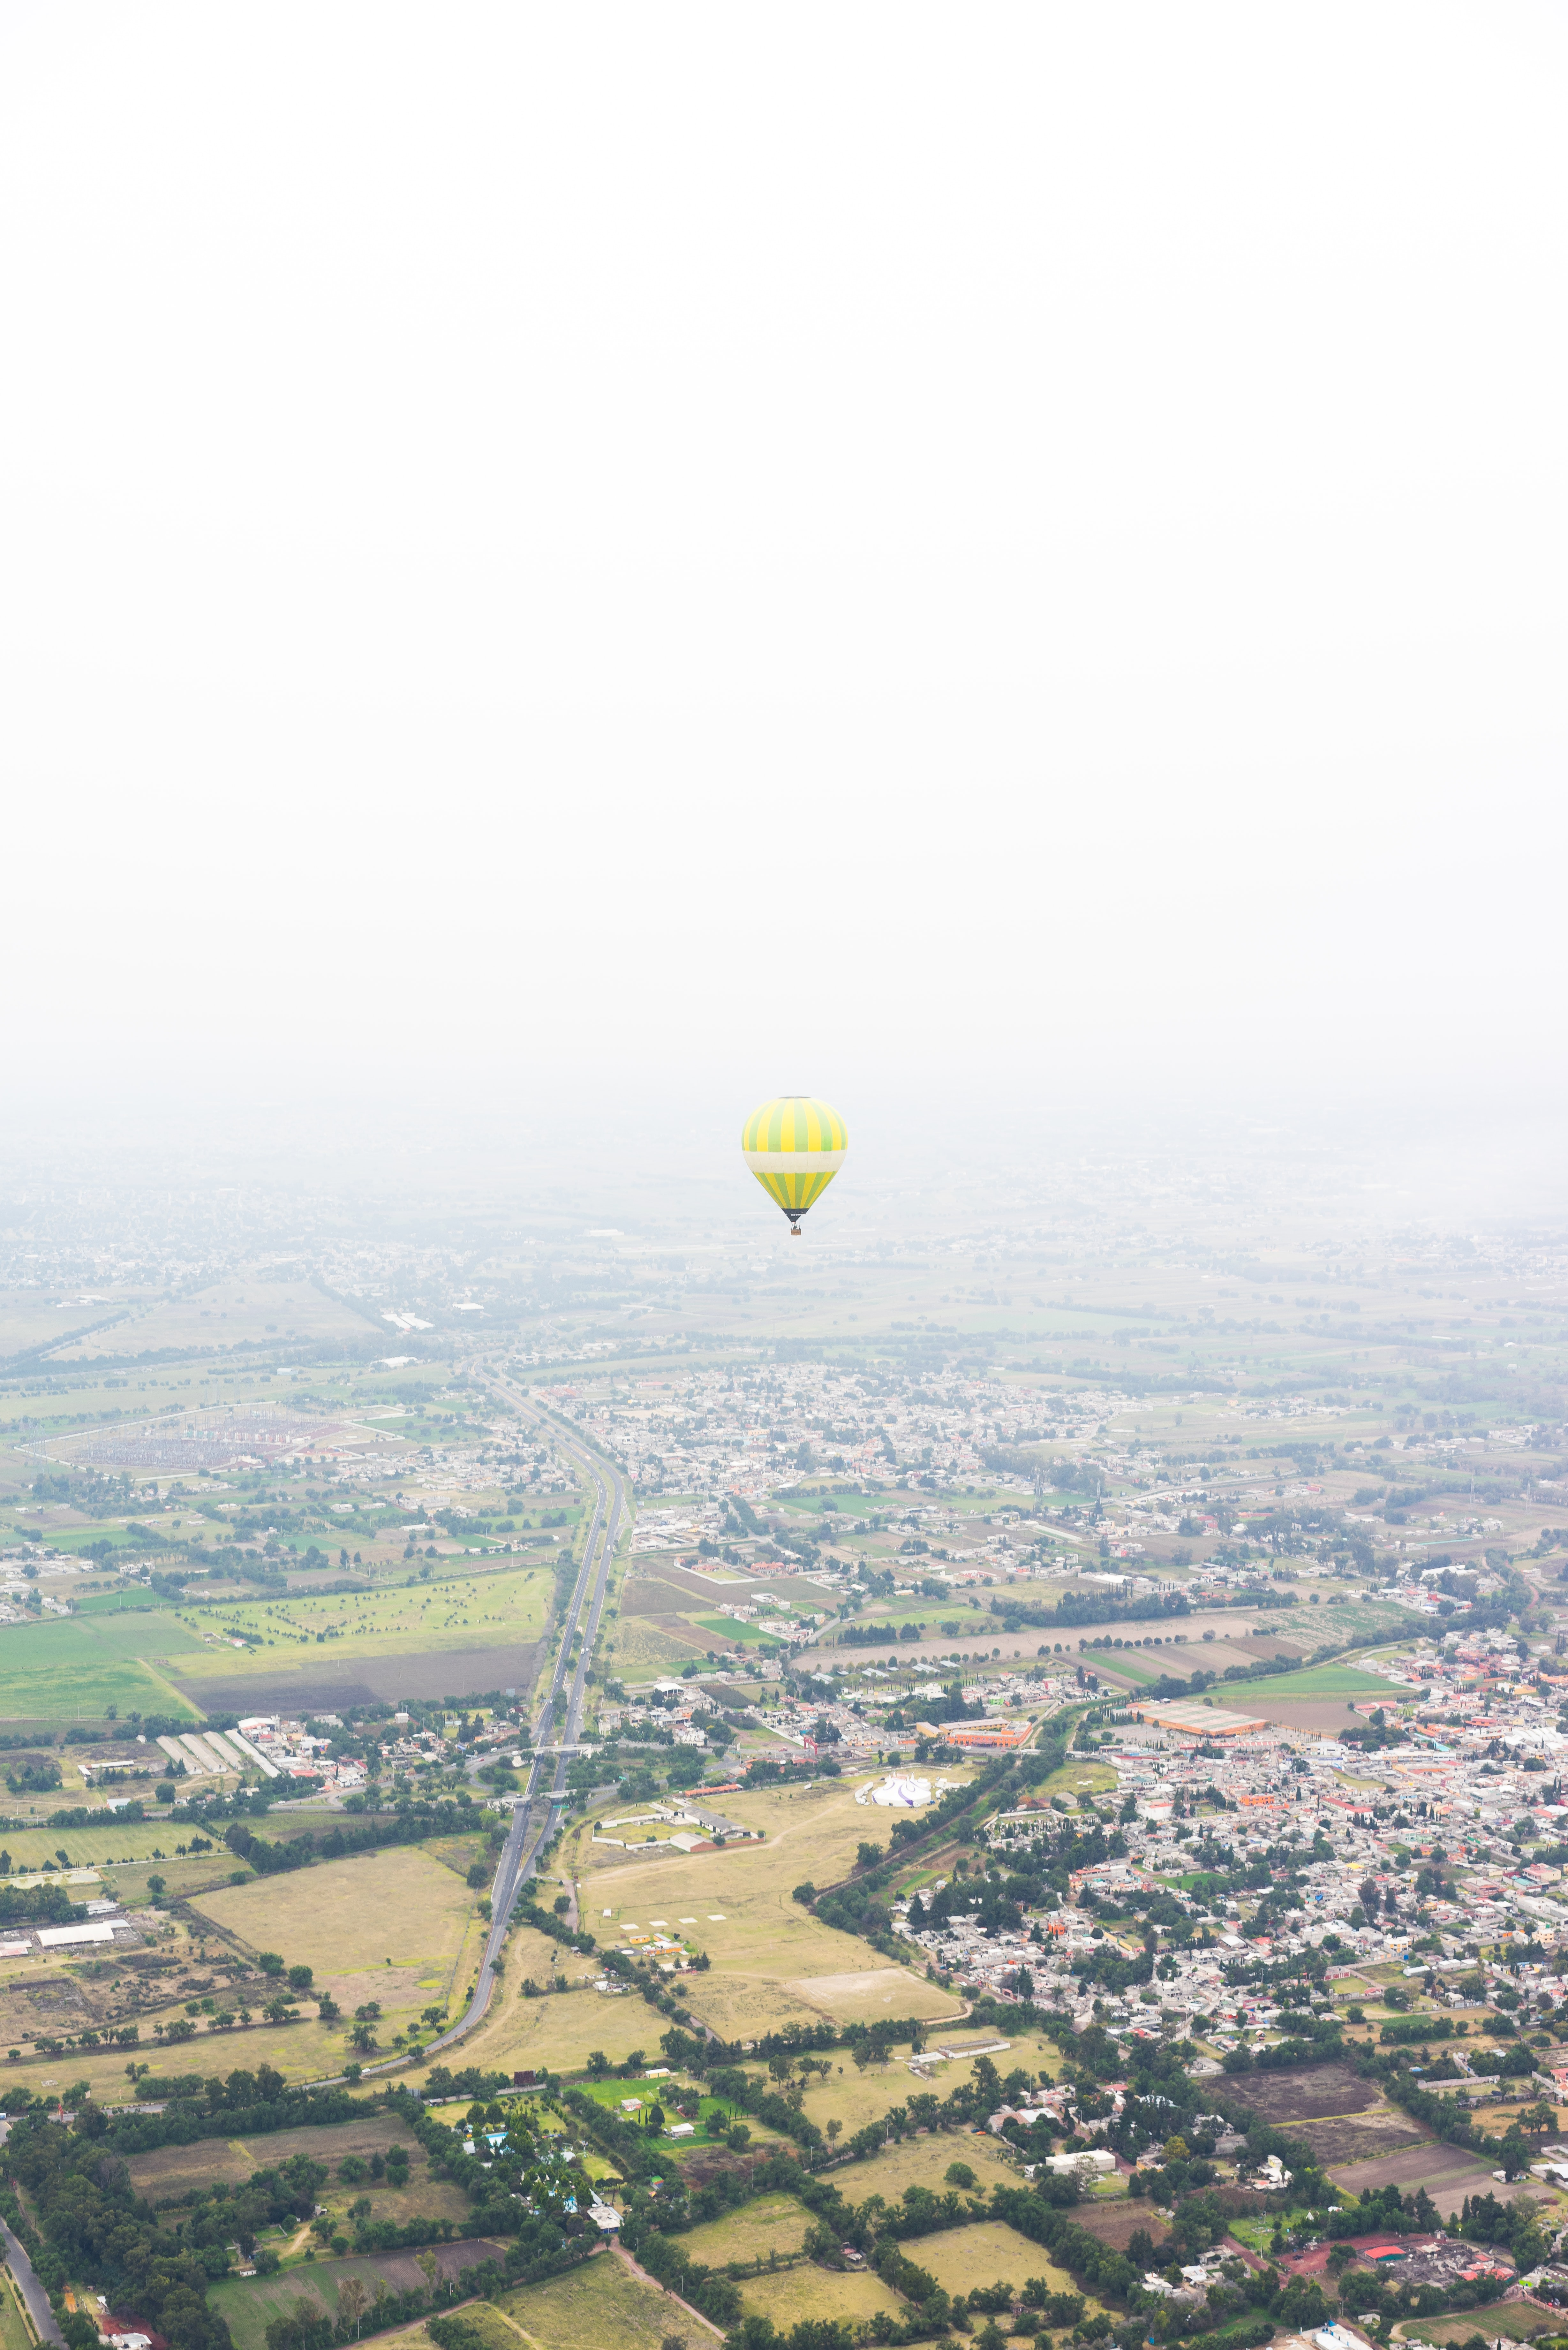 photo of yellow hot air balloon floating above houses